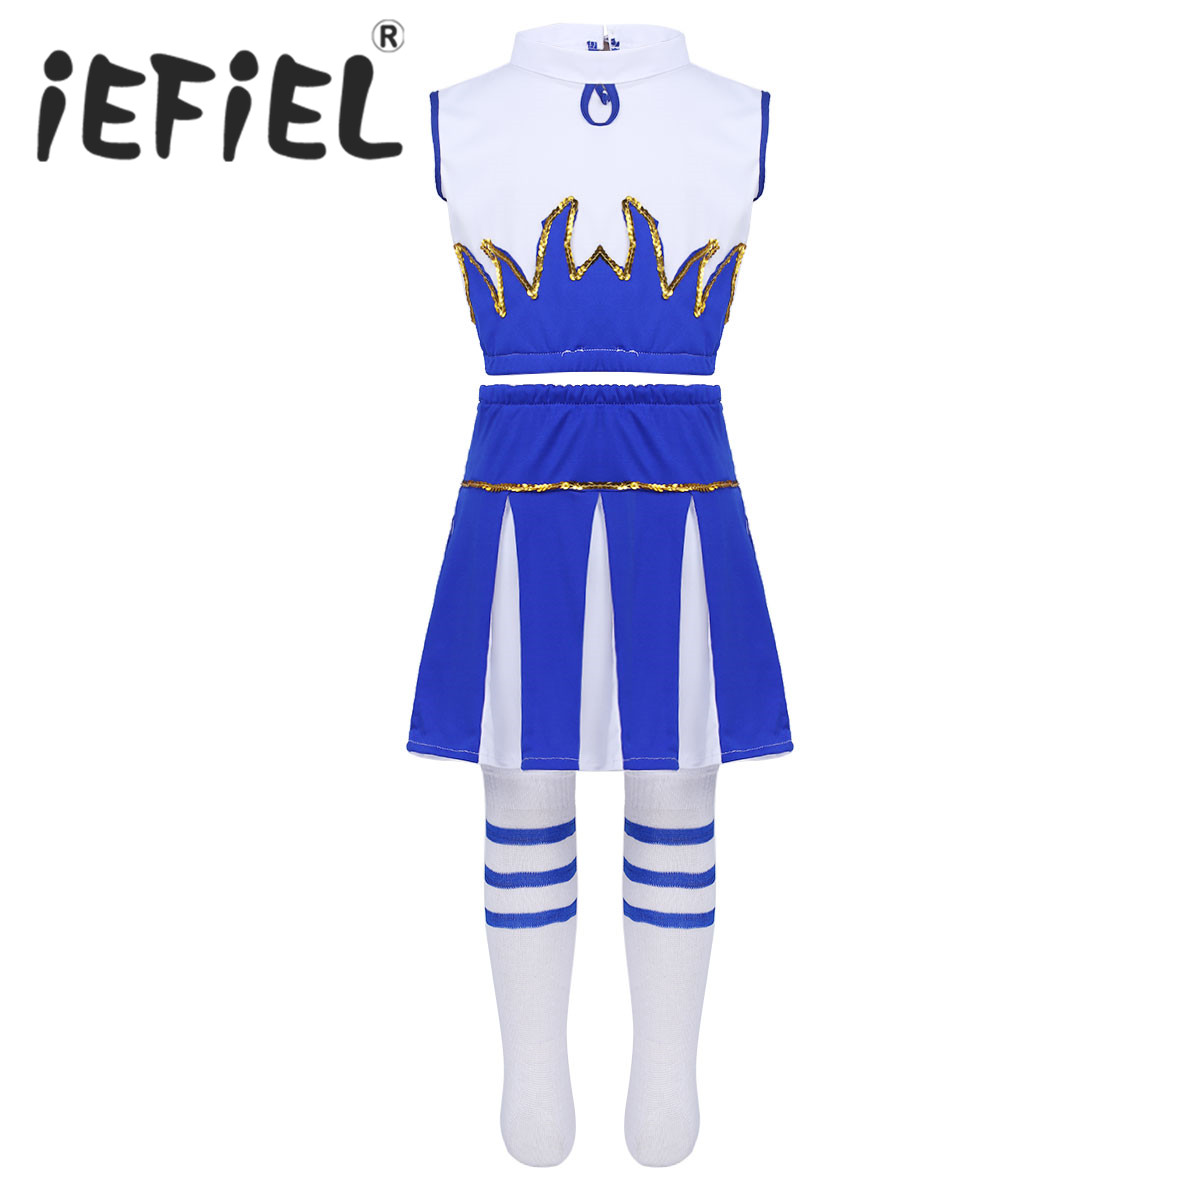 Children Kids Girls Cheerleader Costume Outfit Sleeveless Crop Top with Skirt and Socks Dancewear Set for Carnival Cosplay Party